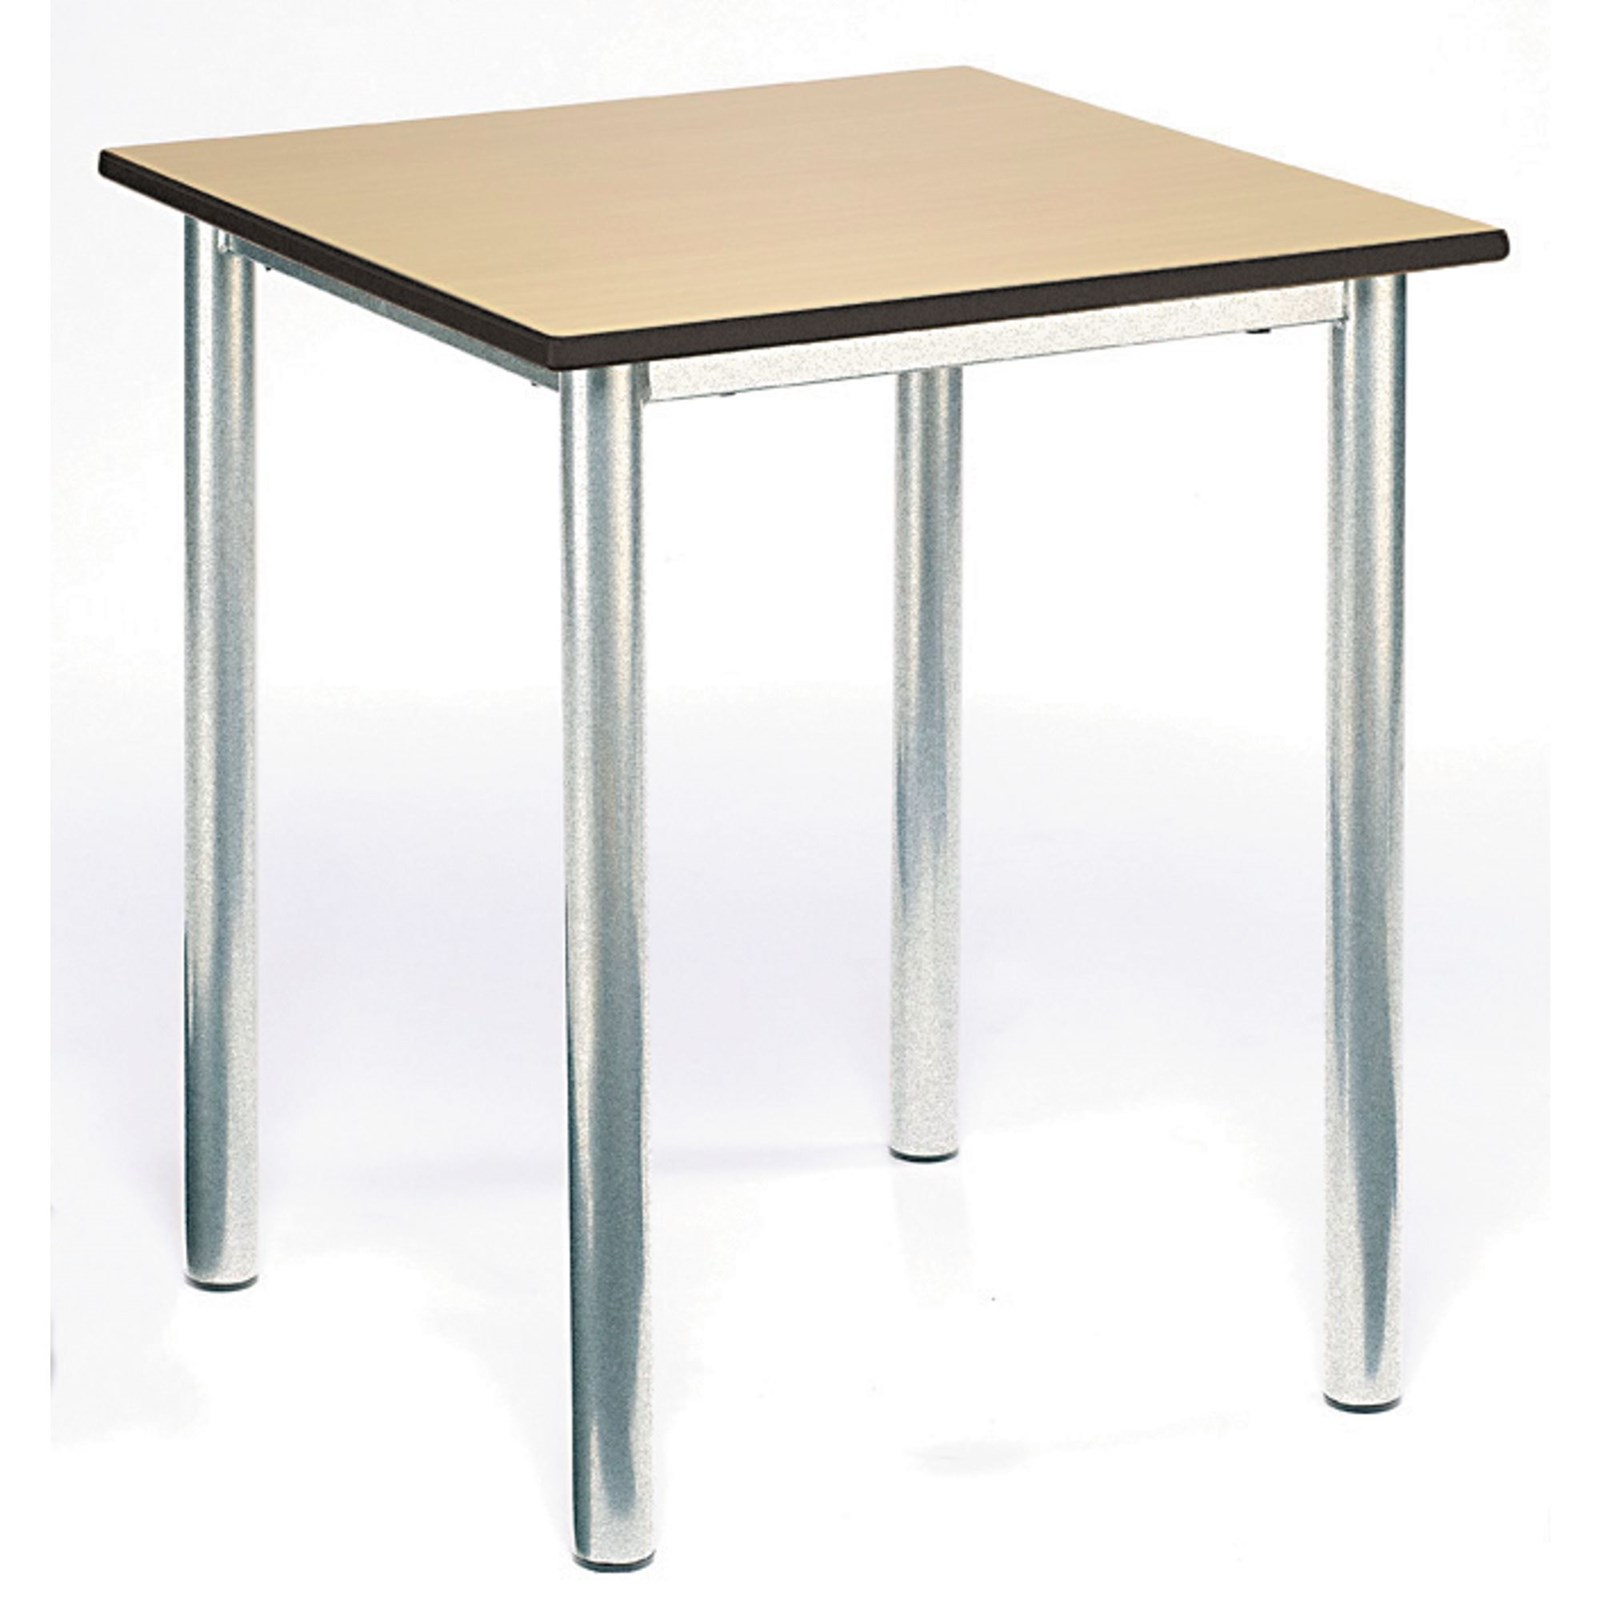 Product Hope Education - Square meeting table